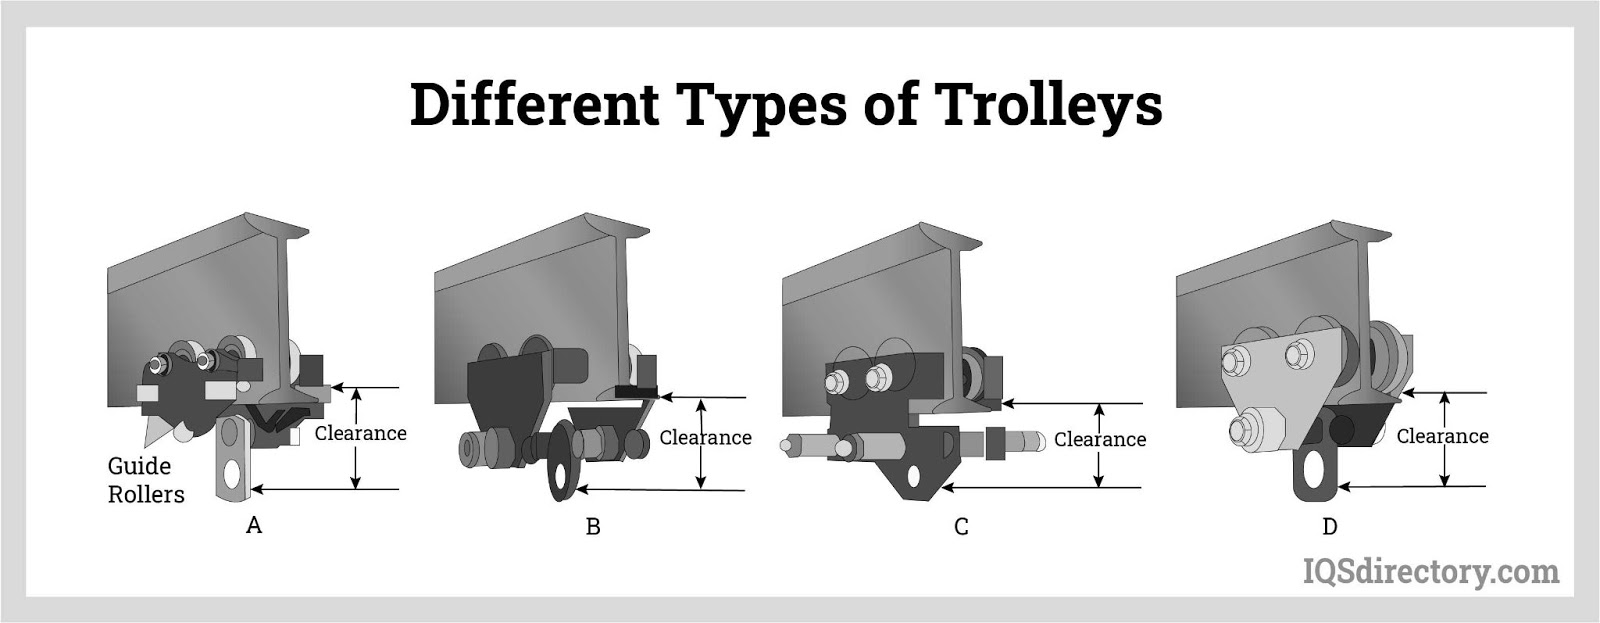 Different Types of Trolleys